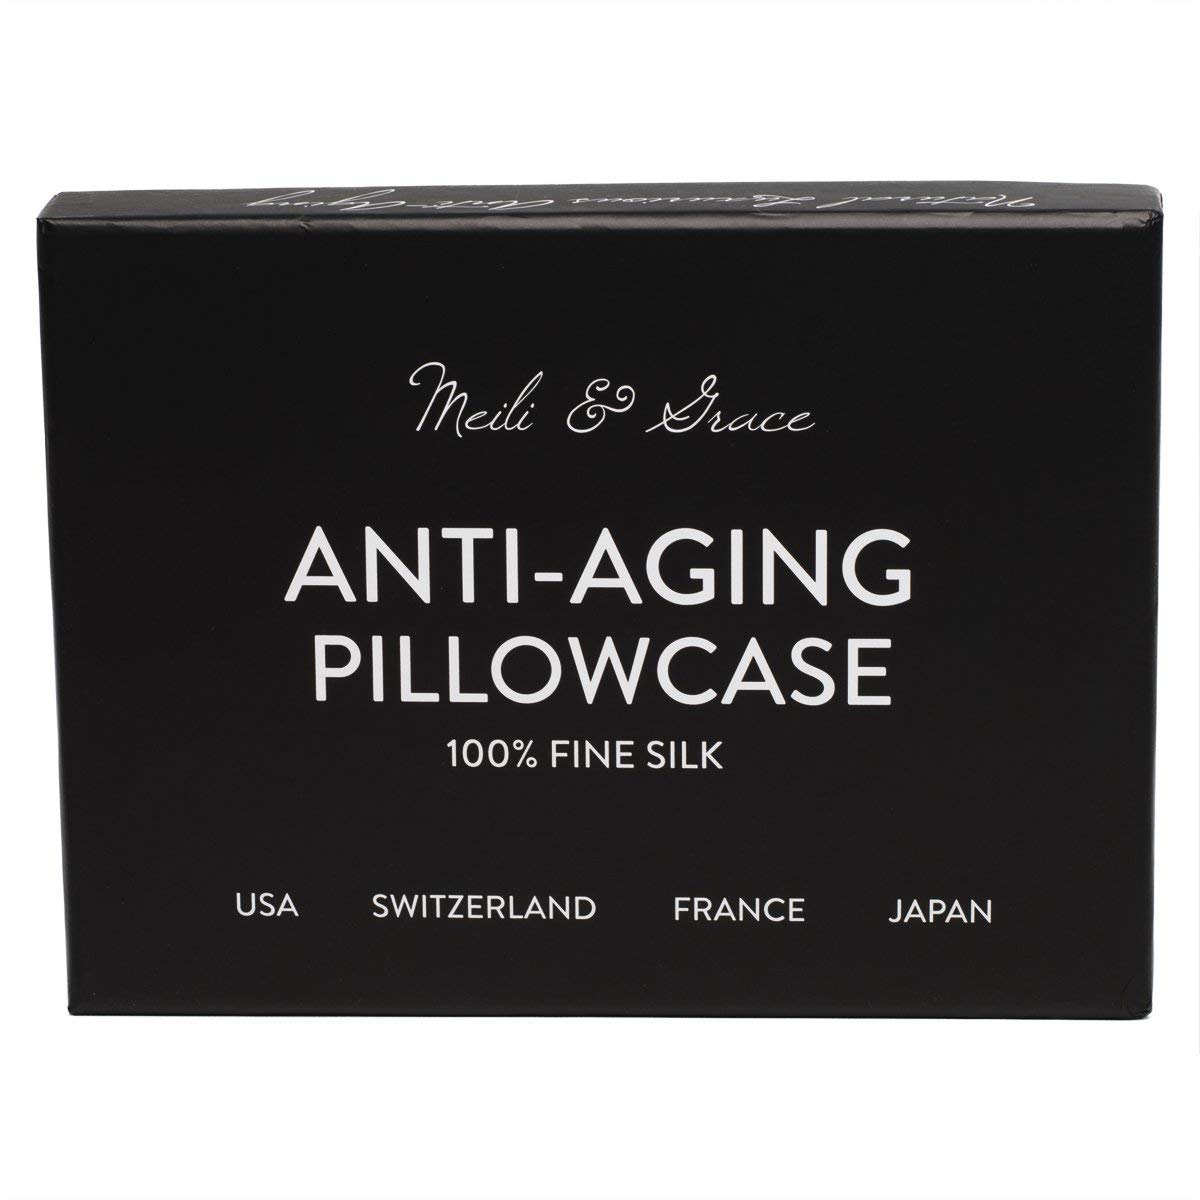 Anti Aging 100 Mulberry Silk Pillowcase By Meili Grace